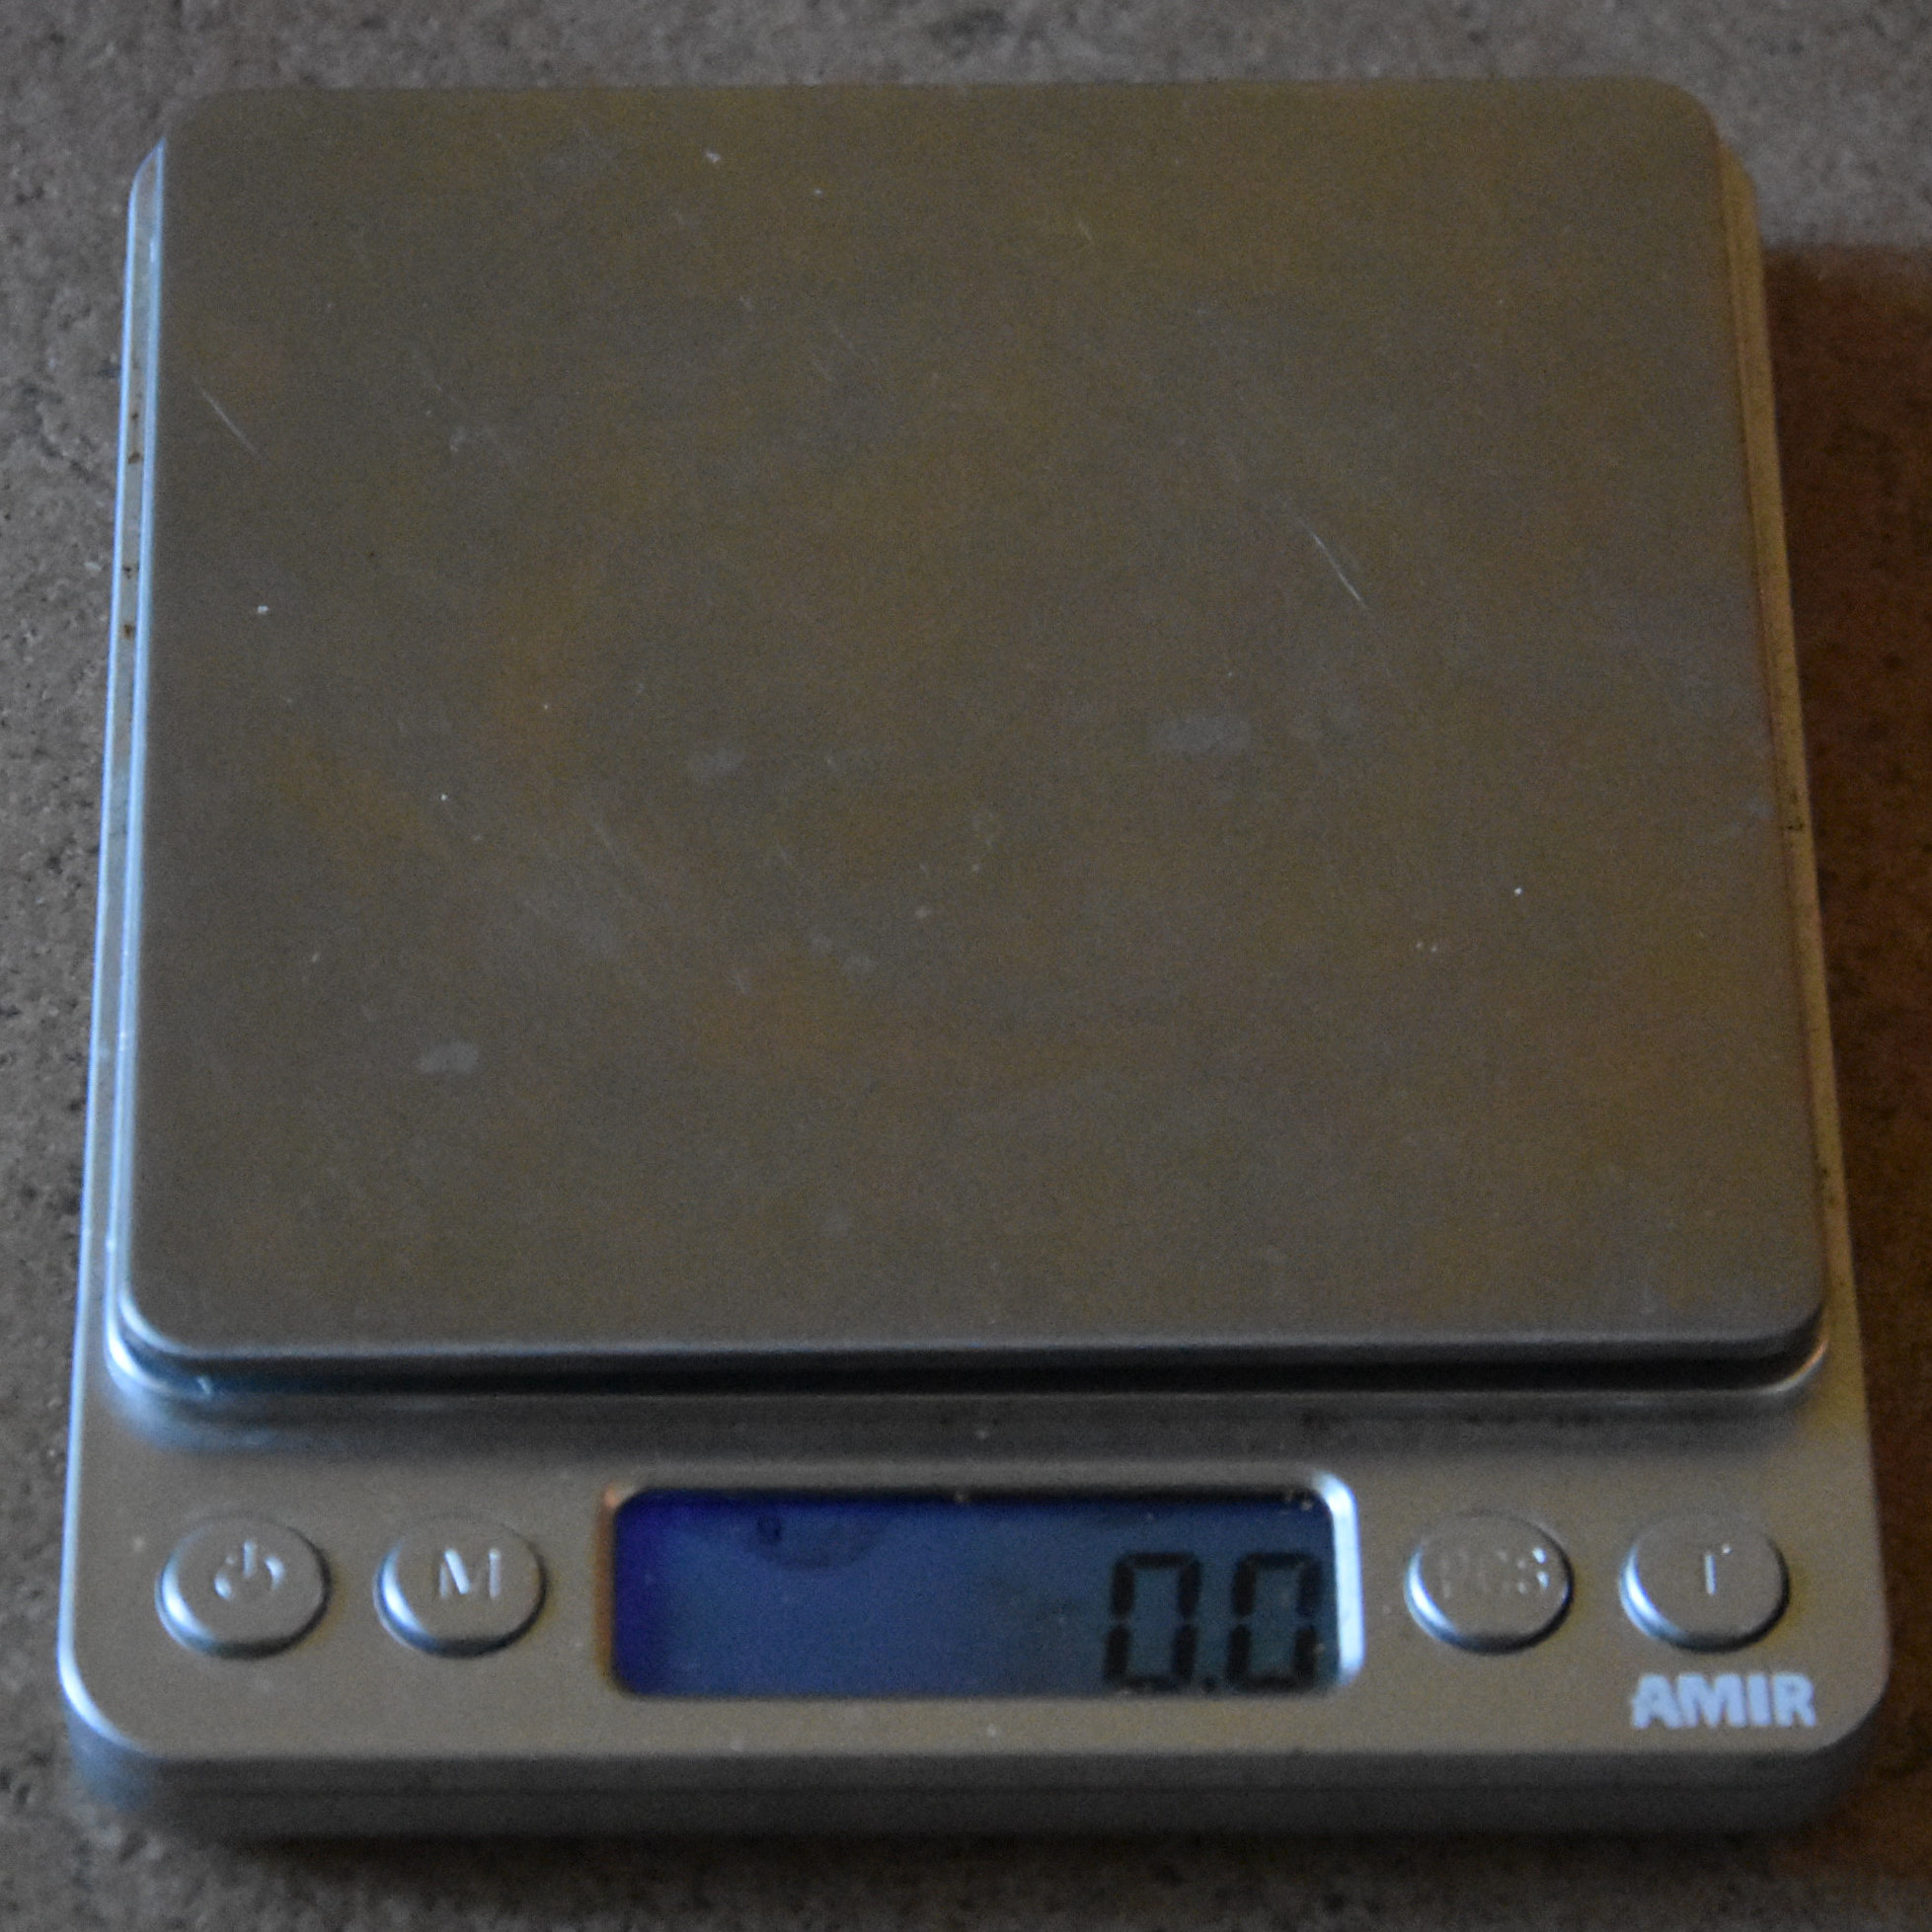 My travelling coffee scales.